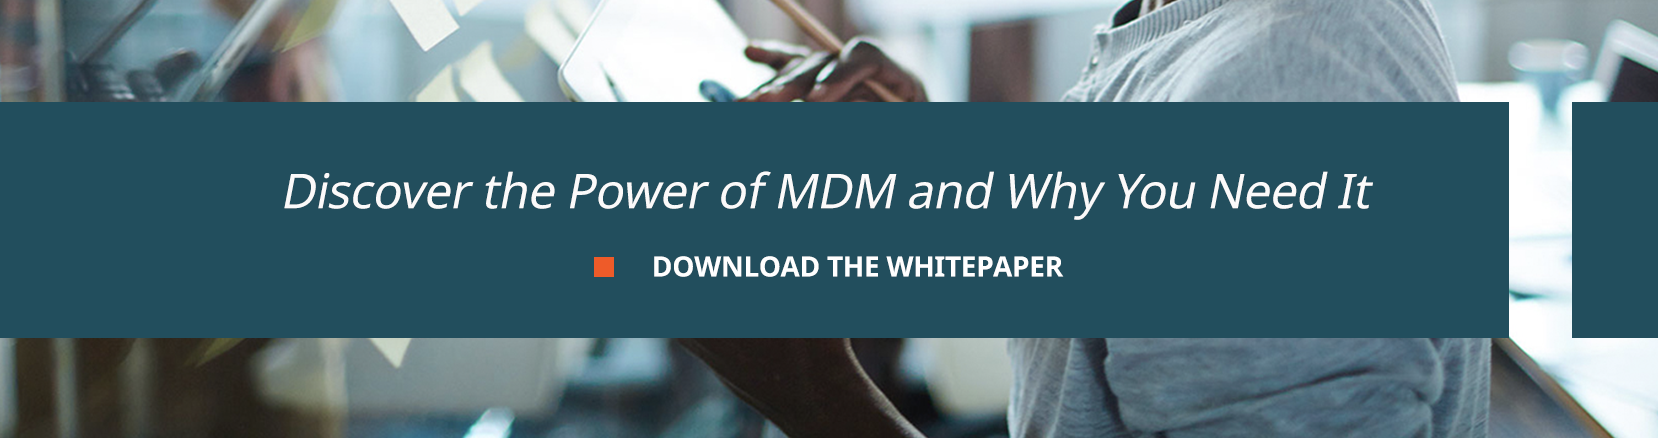 discover the power of mdm and why you need it